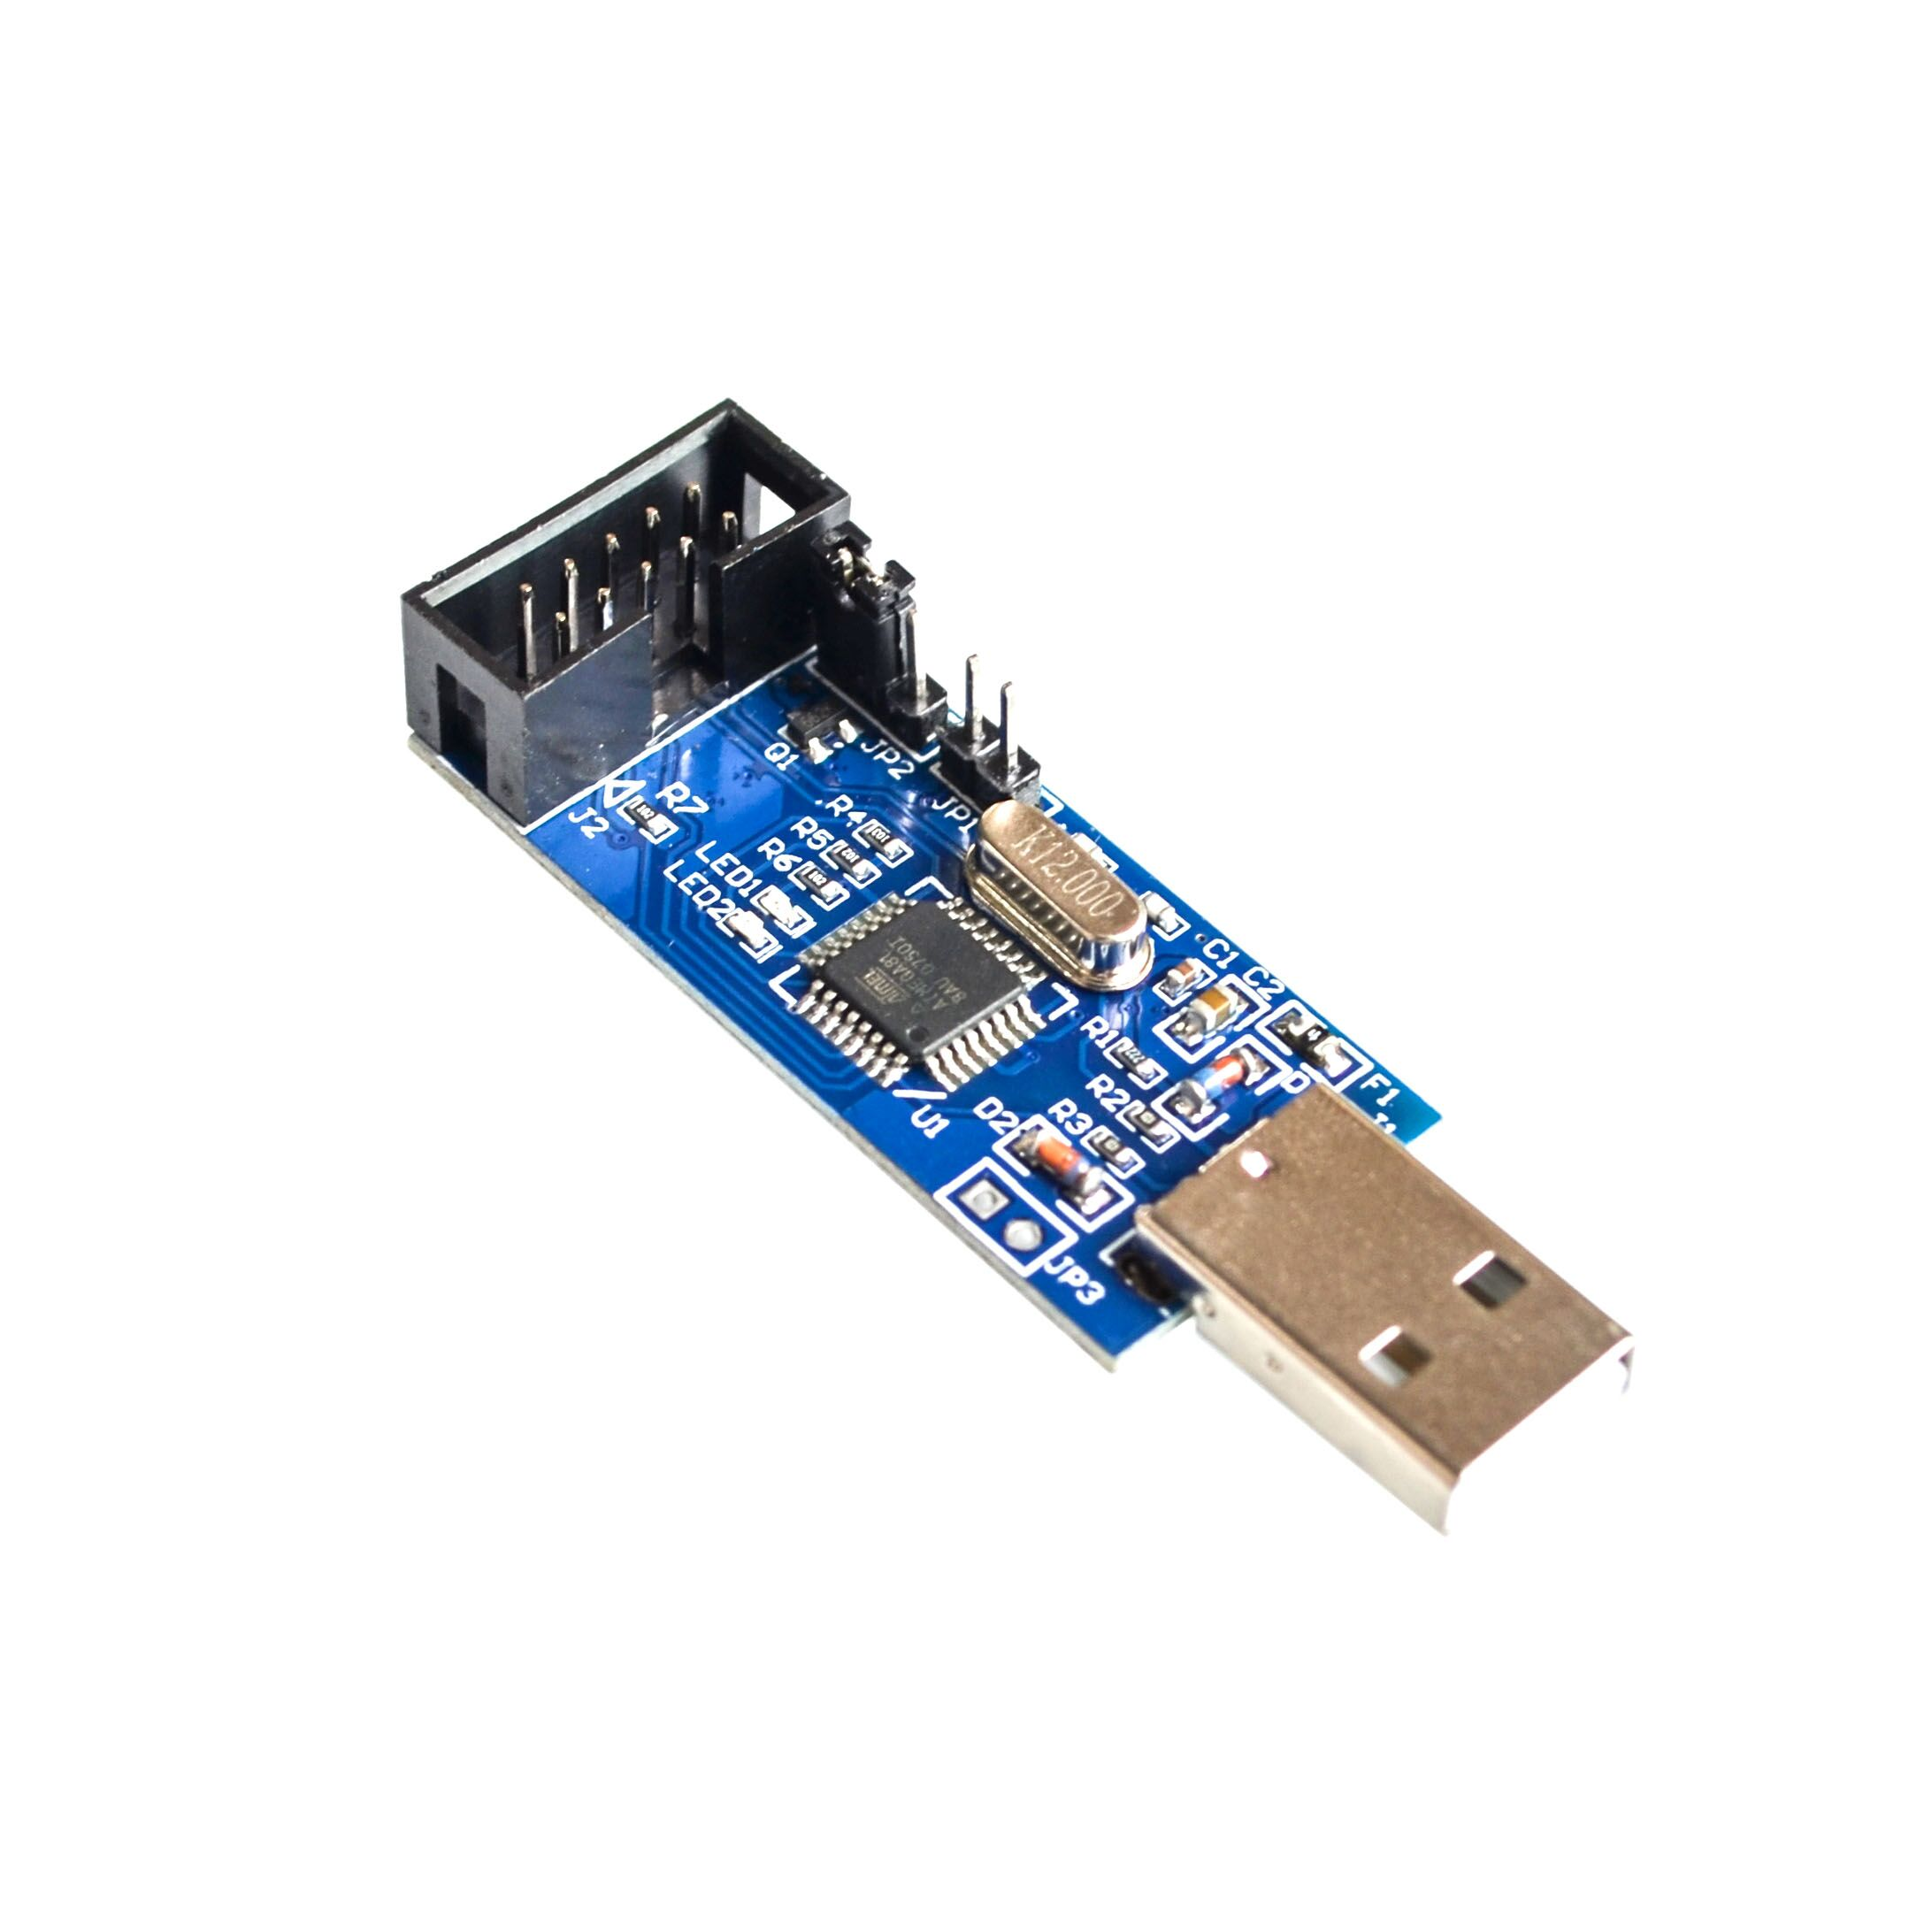 Usbasp Usbisp Avr Programmer Usb Isp Asp Atmega8 Atmega128 For Atmel With Case Reviews Aeproductgetsubject